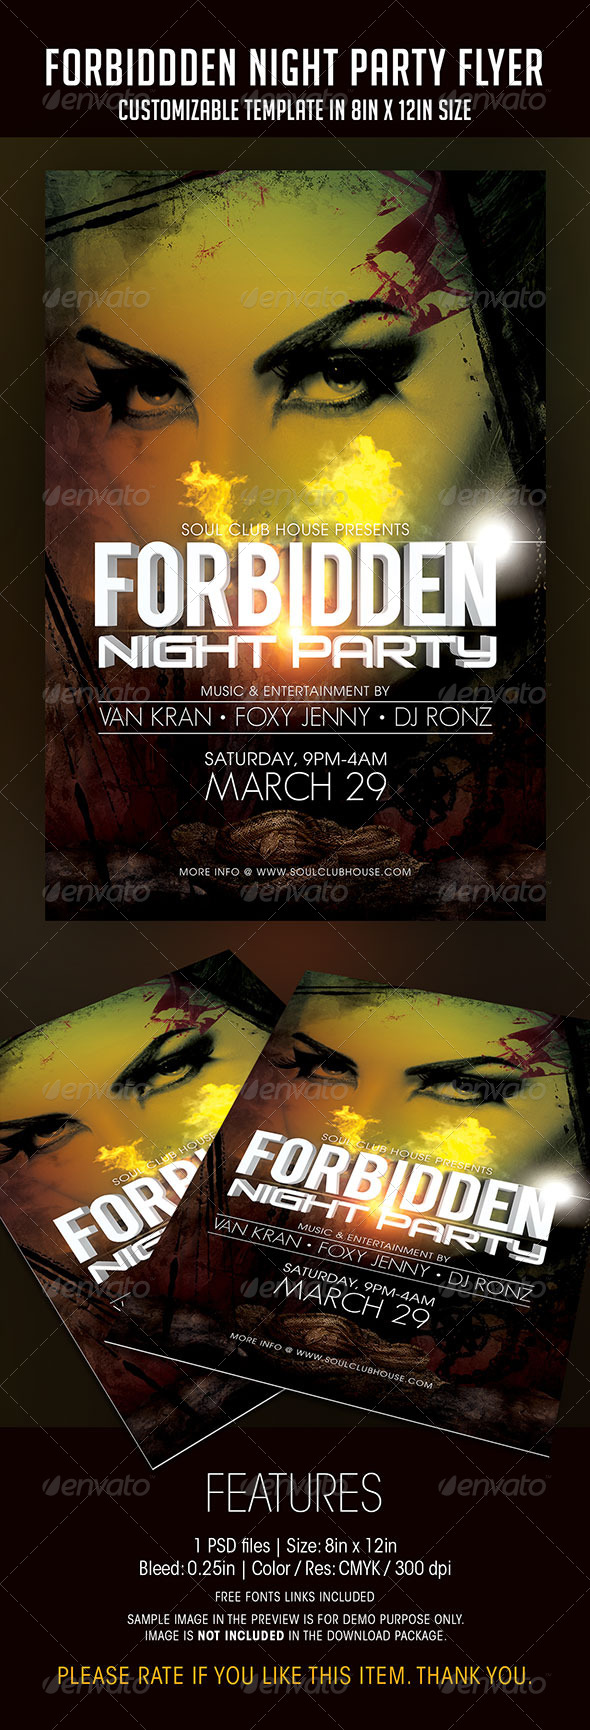 Forbidden Night Party Flyer - Clubs & Parties Events